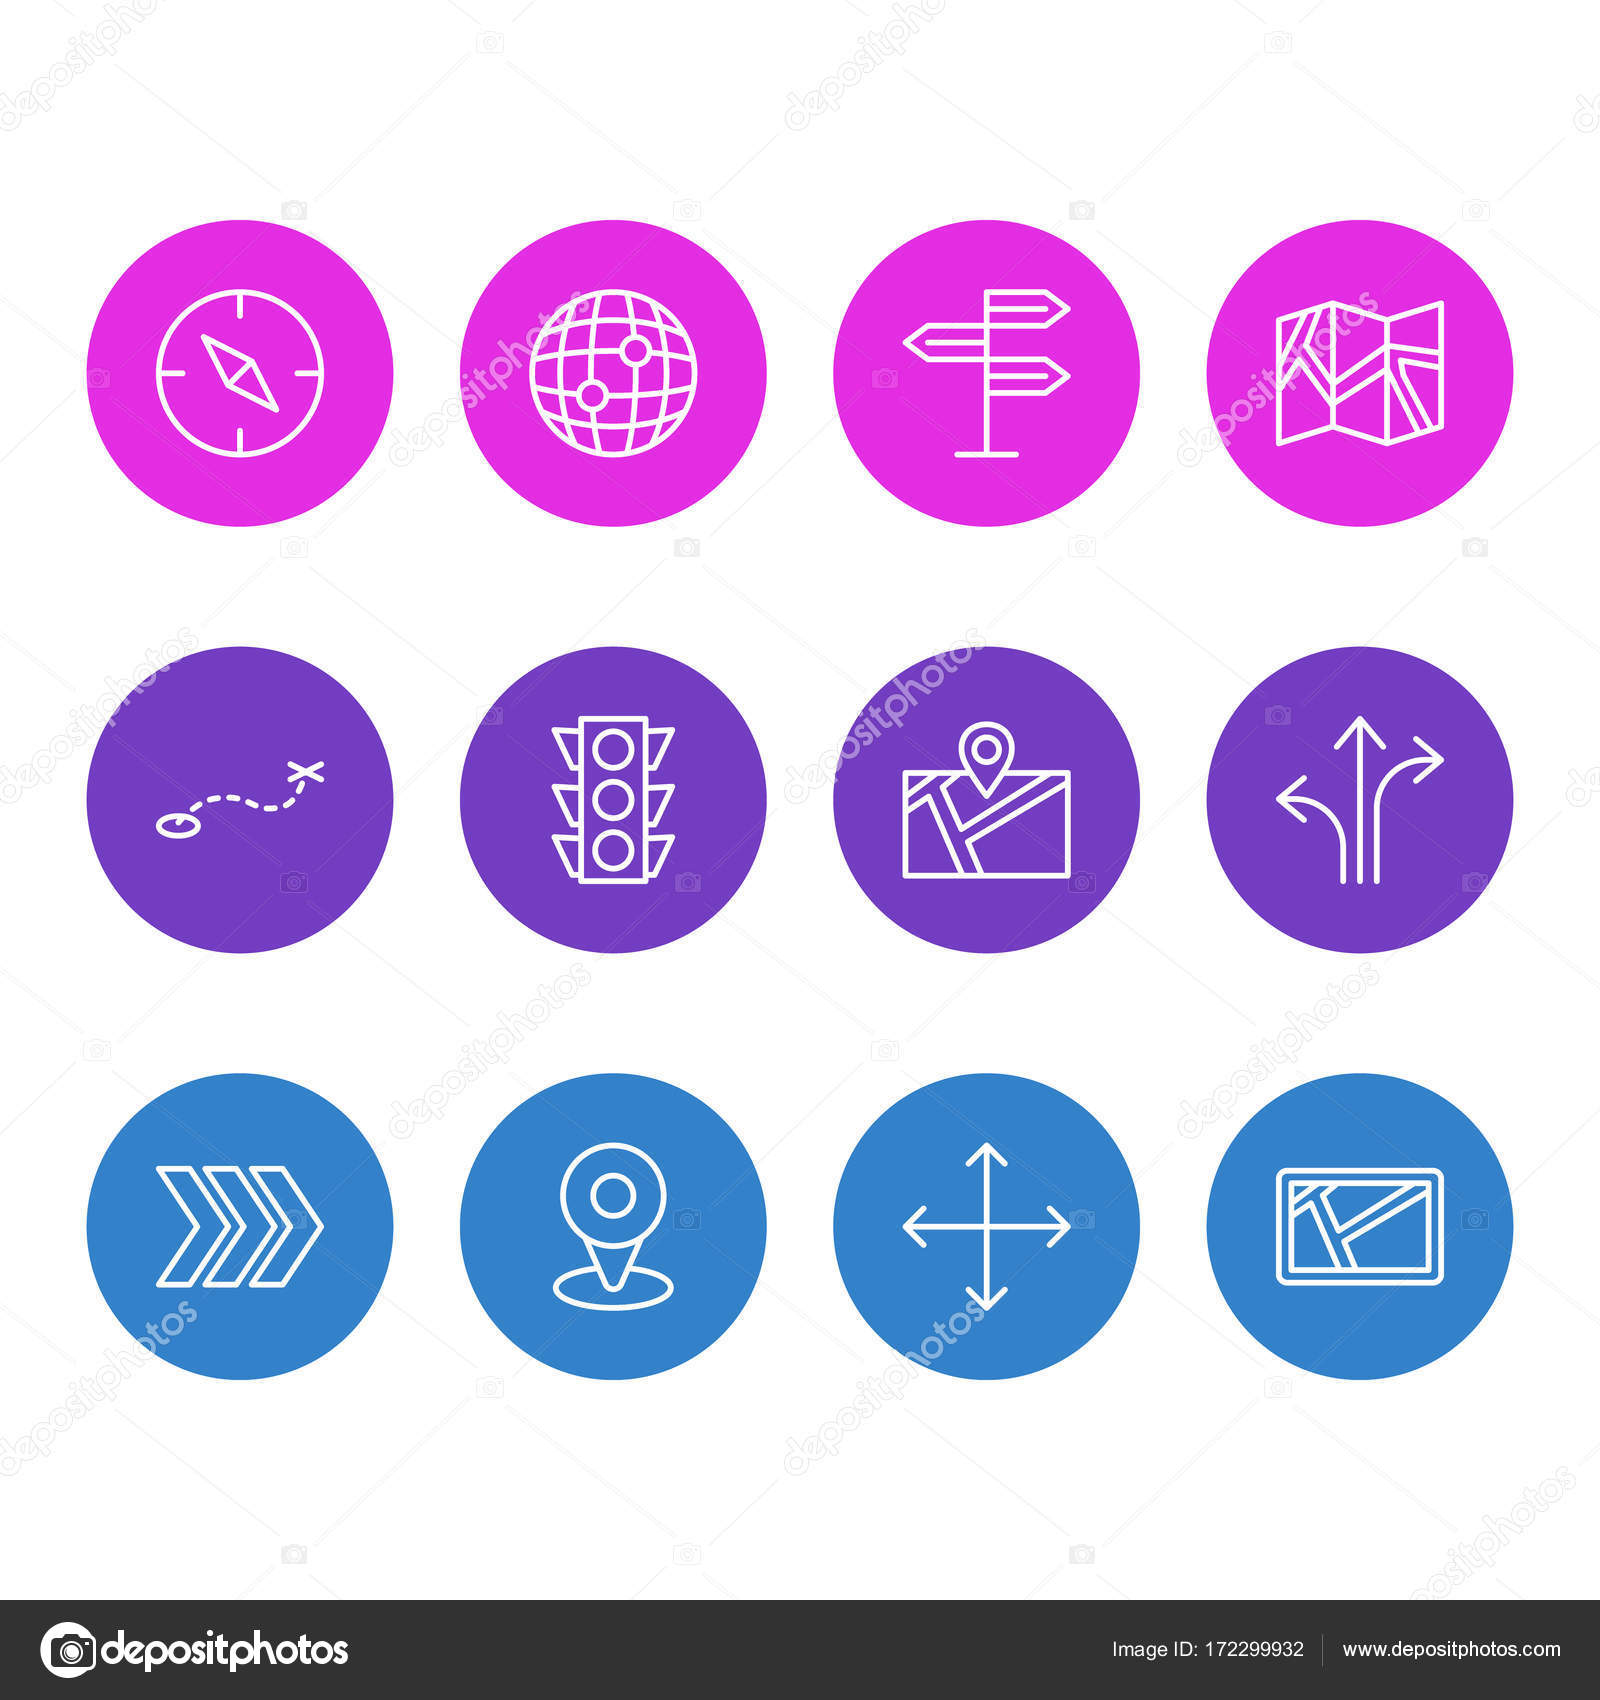 Vector illustration of 12 location icons editable pack of world vector illustration of 12 location icons editable pack of world map arrow and gumiabroncs Image collections